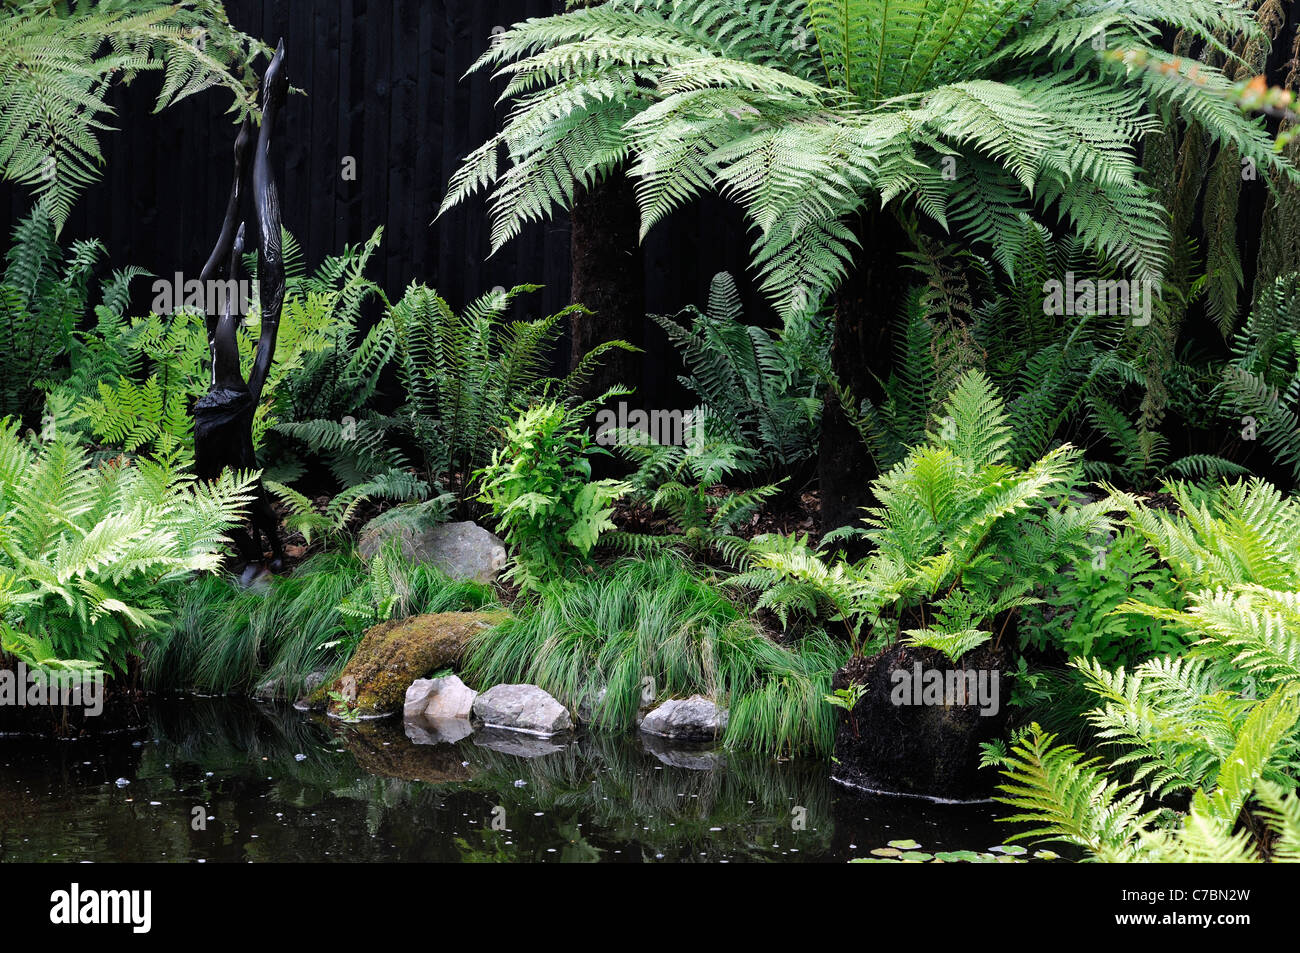 Fern Garden Mixed Shade Shady Loving Plants Beside Water Pool Pond Wet  Boggy Soil Tranquil Quite Relaxed Relaxing Environment